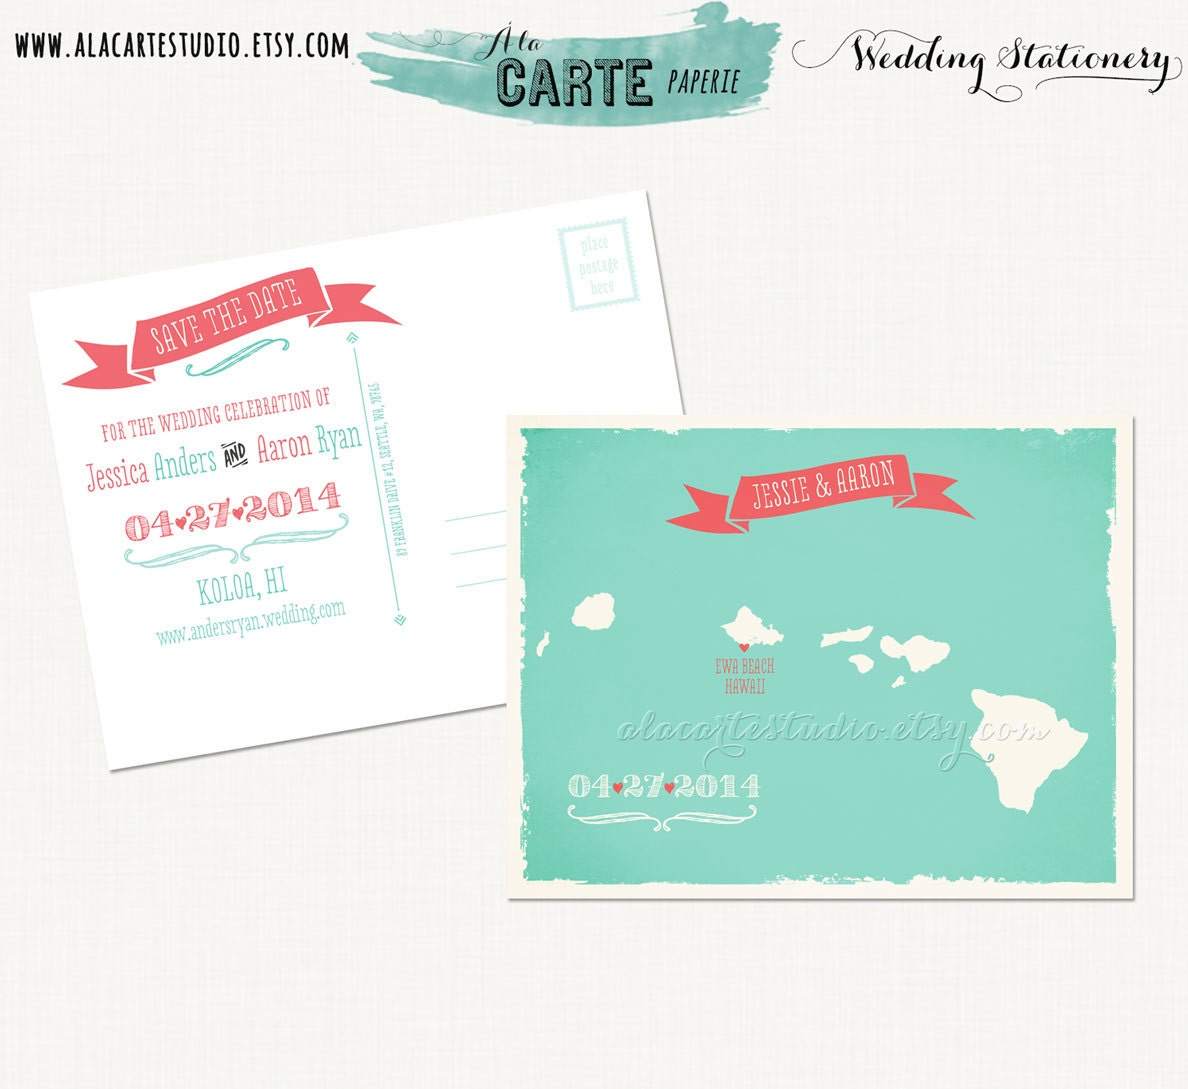 Weddingthemesrus: Coral and Teal Wedding Theme